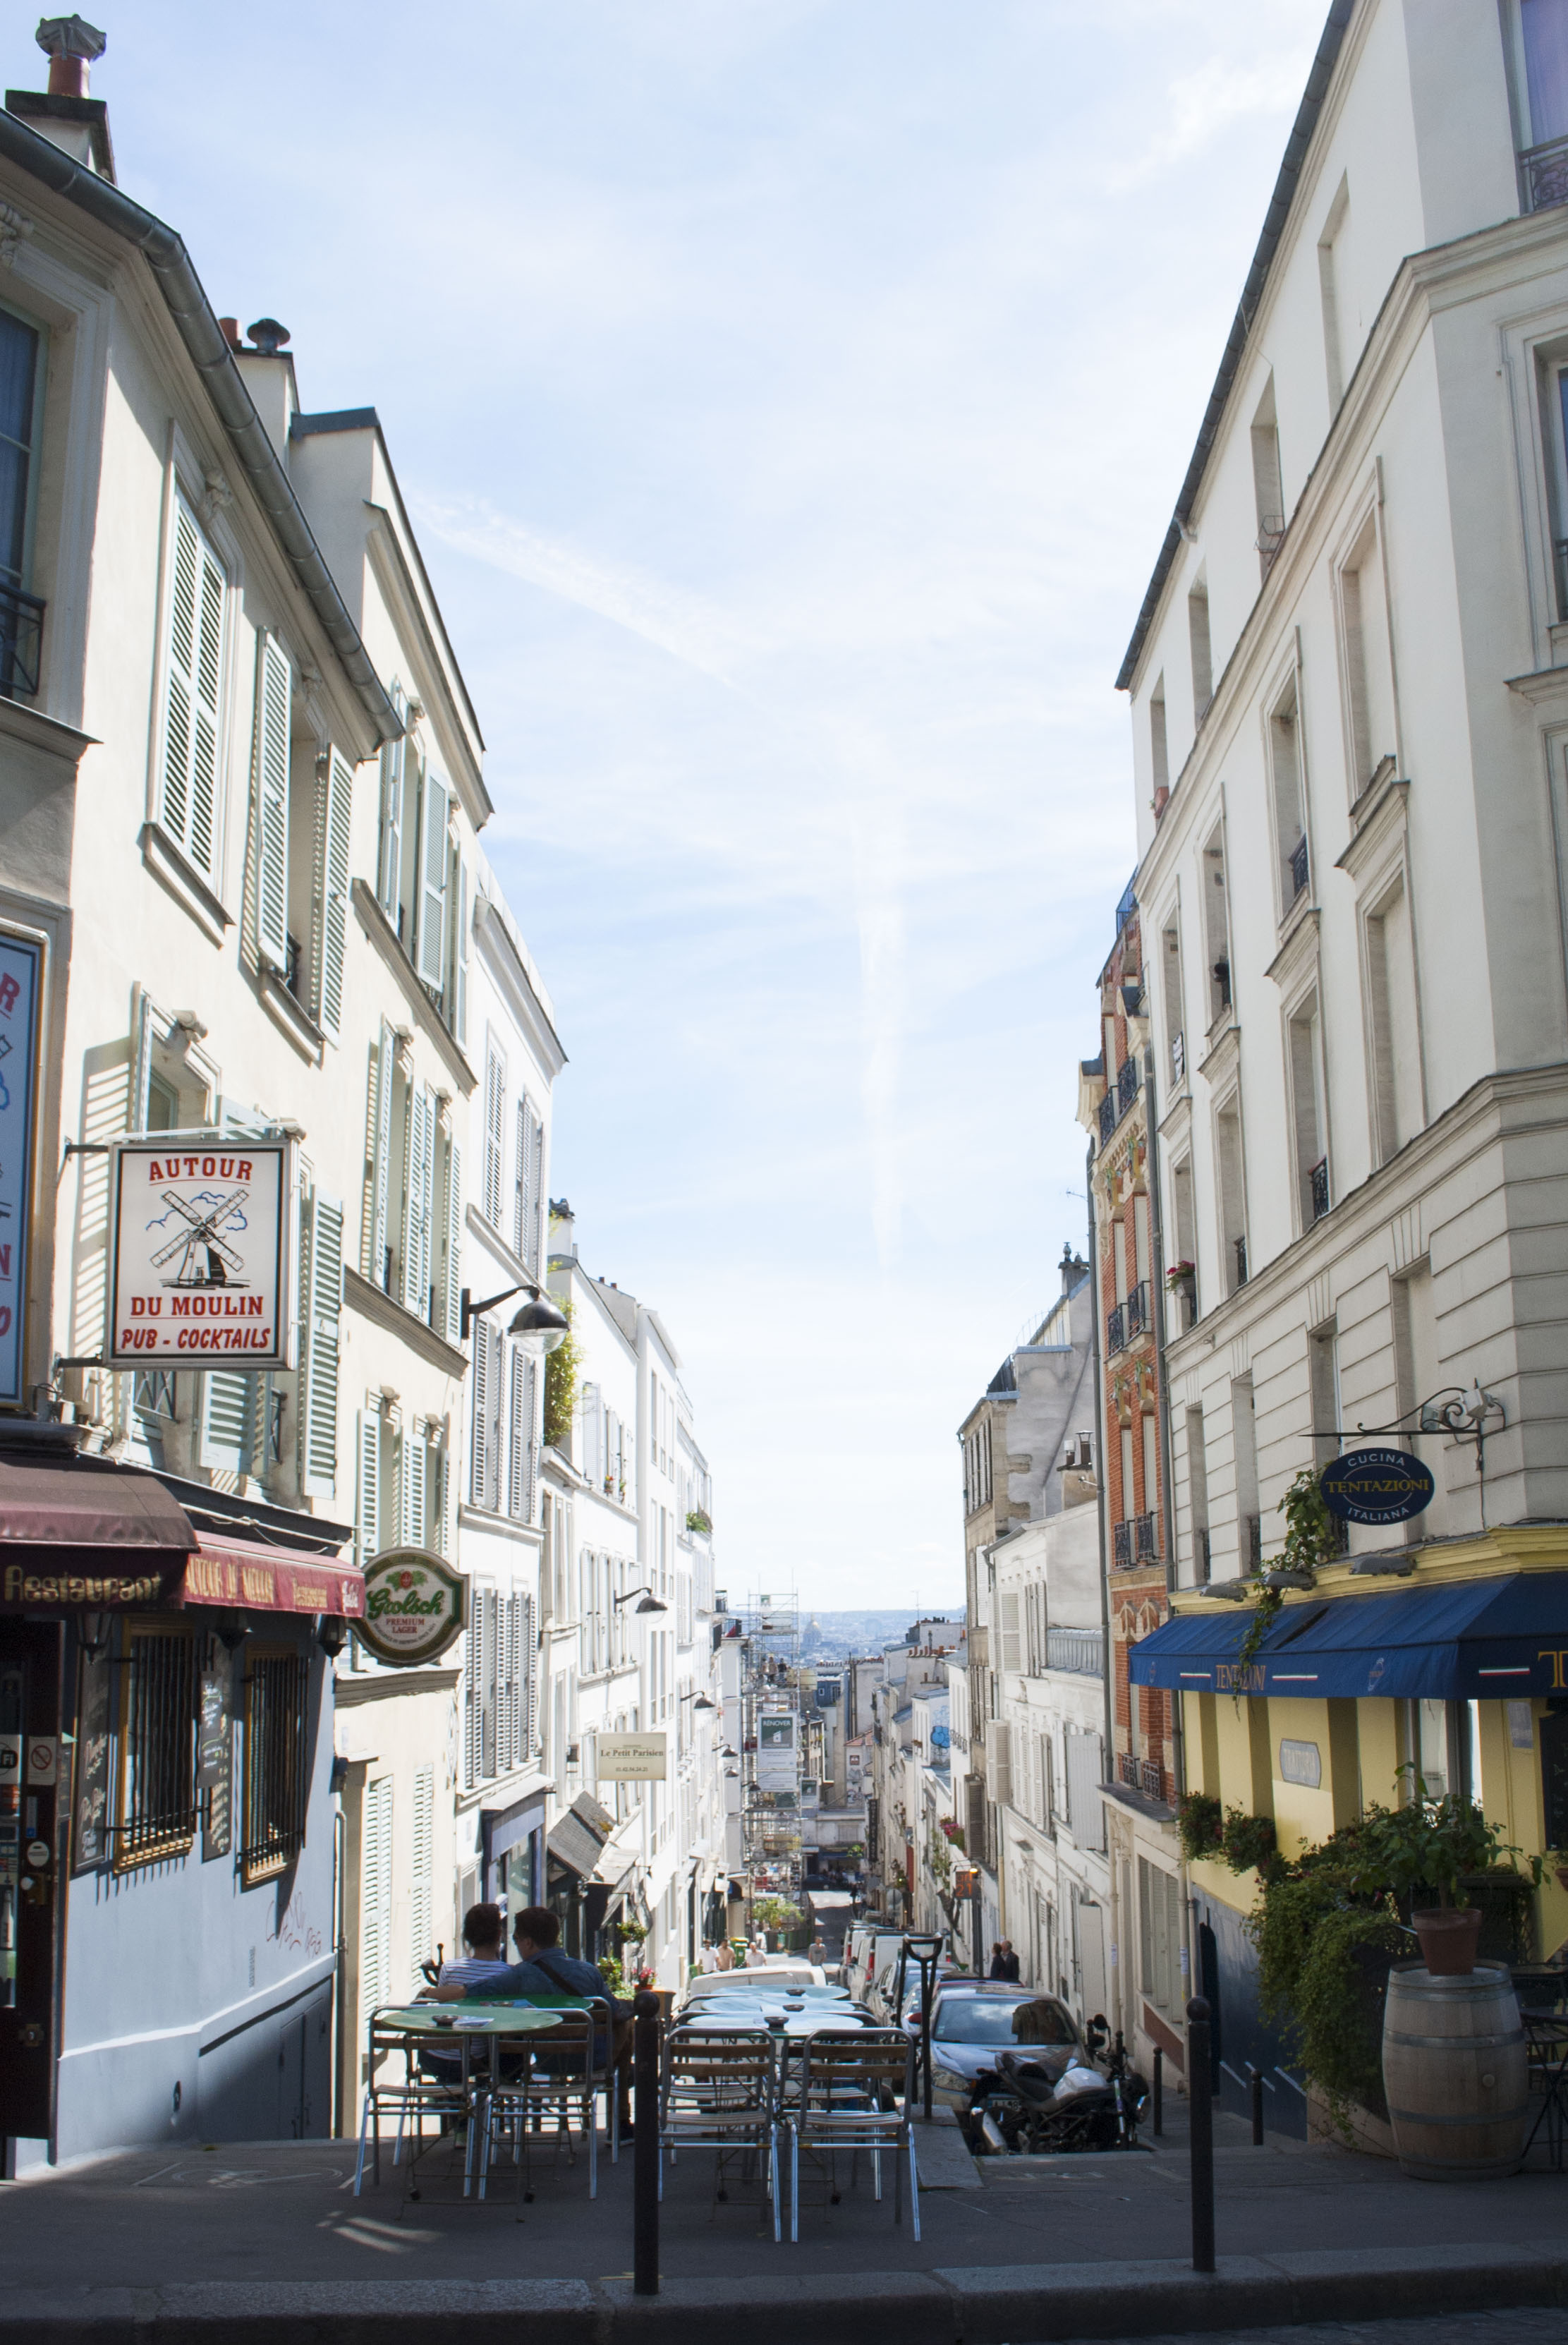 Montmartre's elevated view.